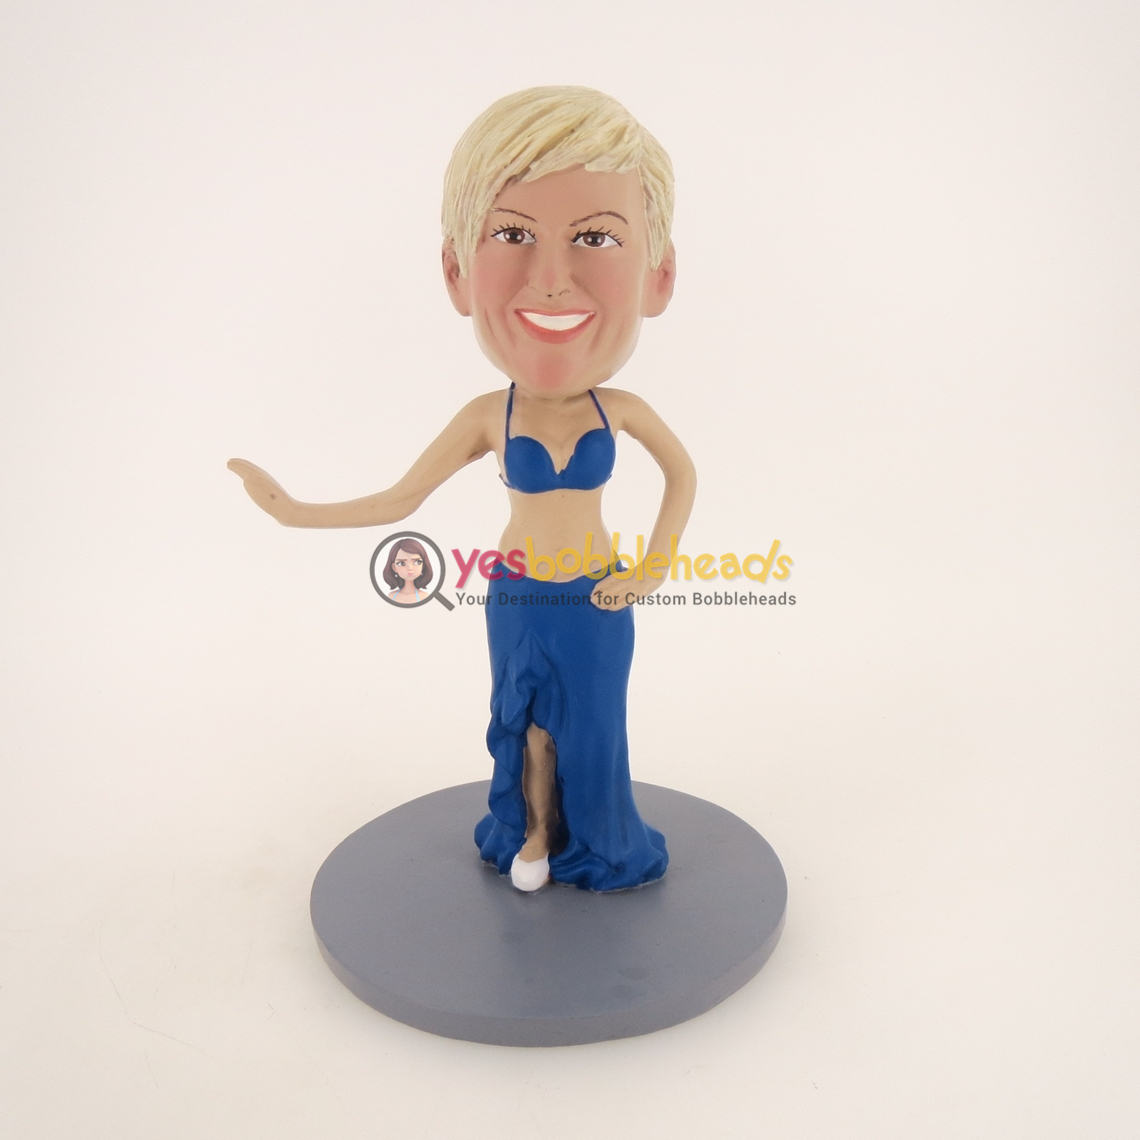 Picture of Custom Bobblehead Doll: Dancing Woman